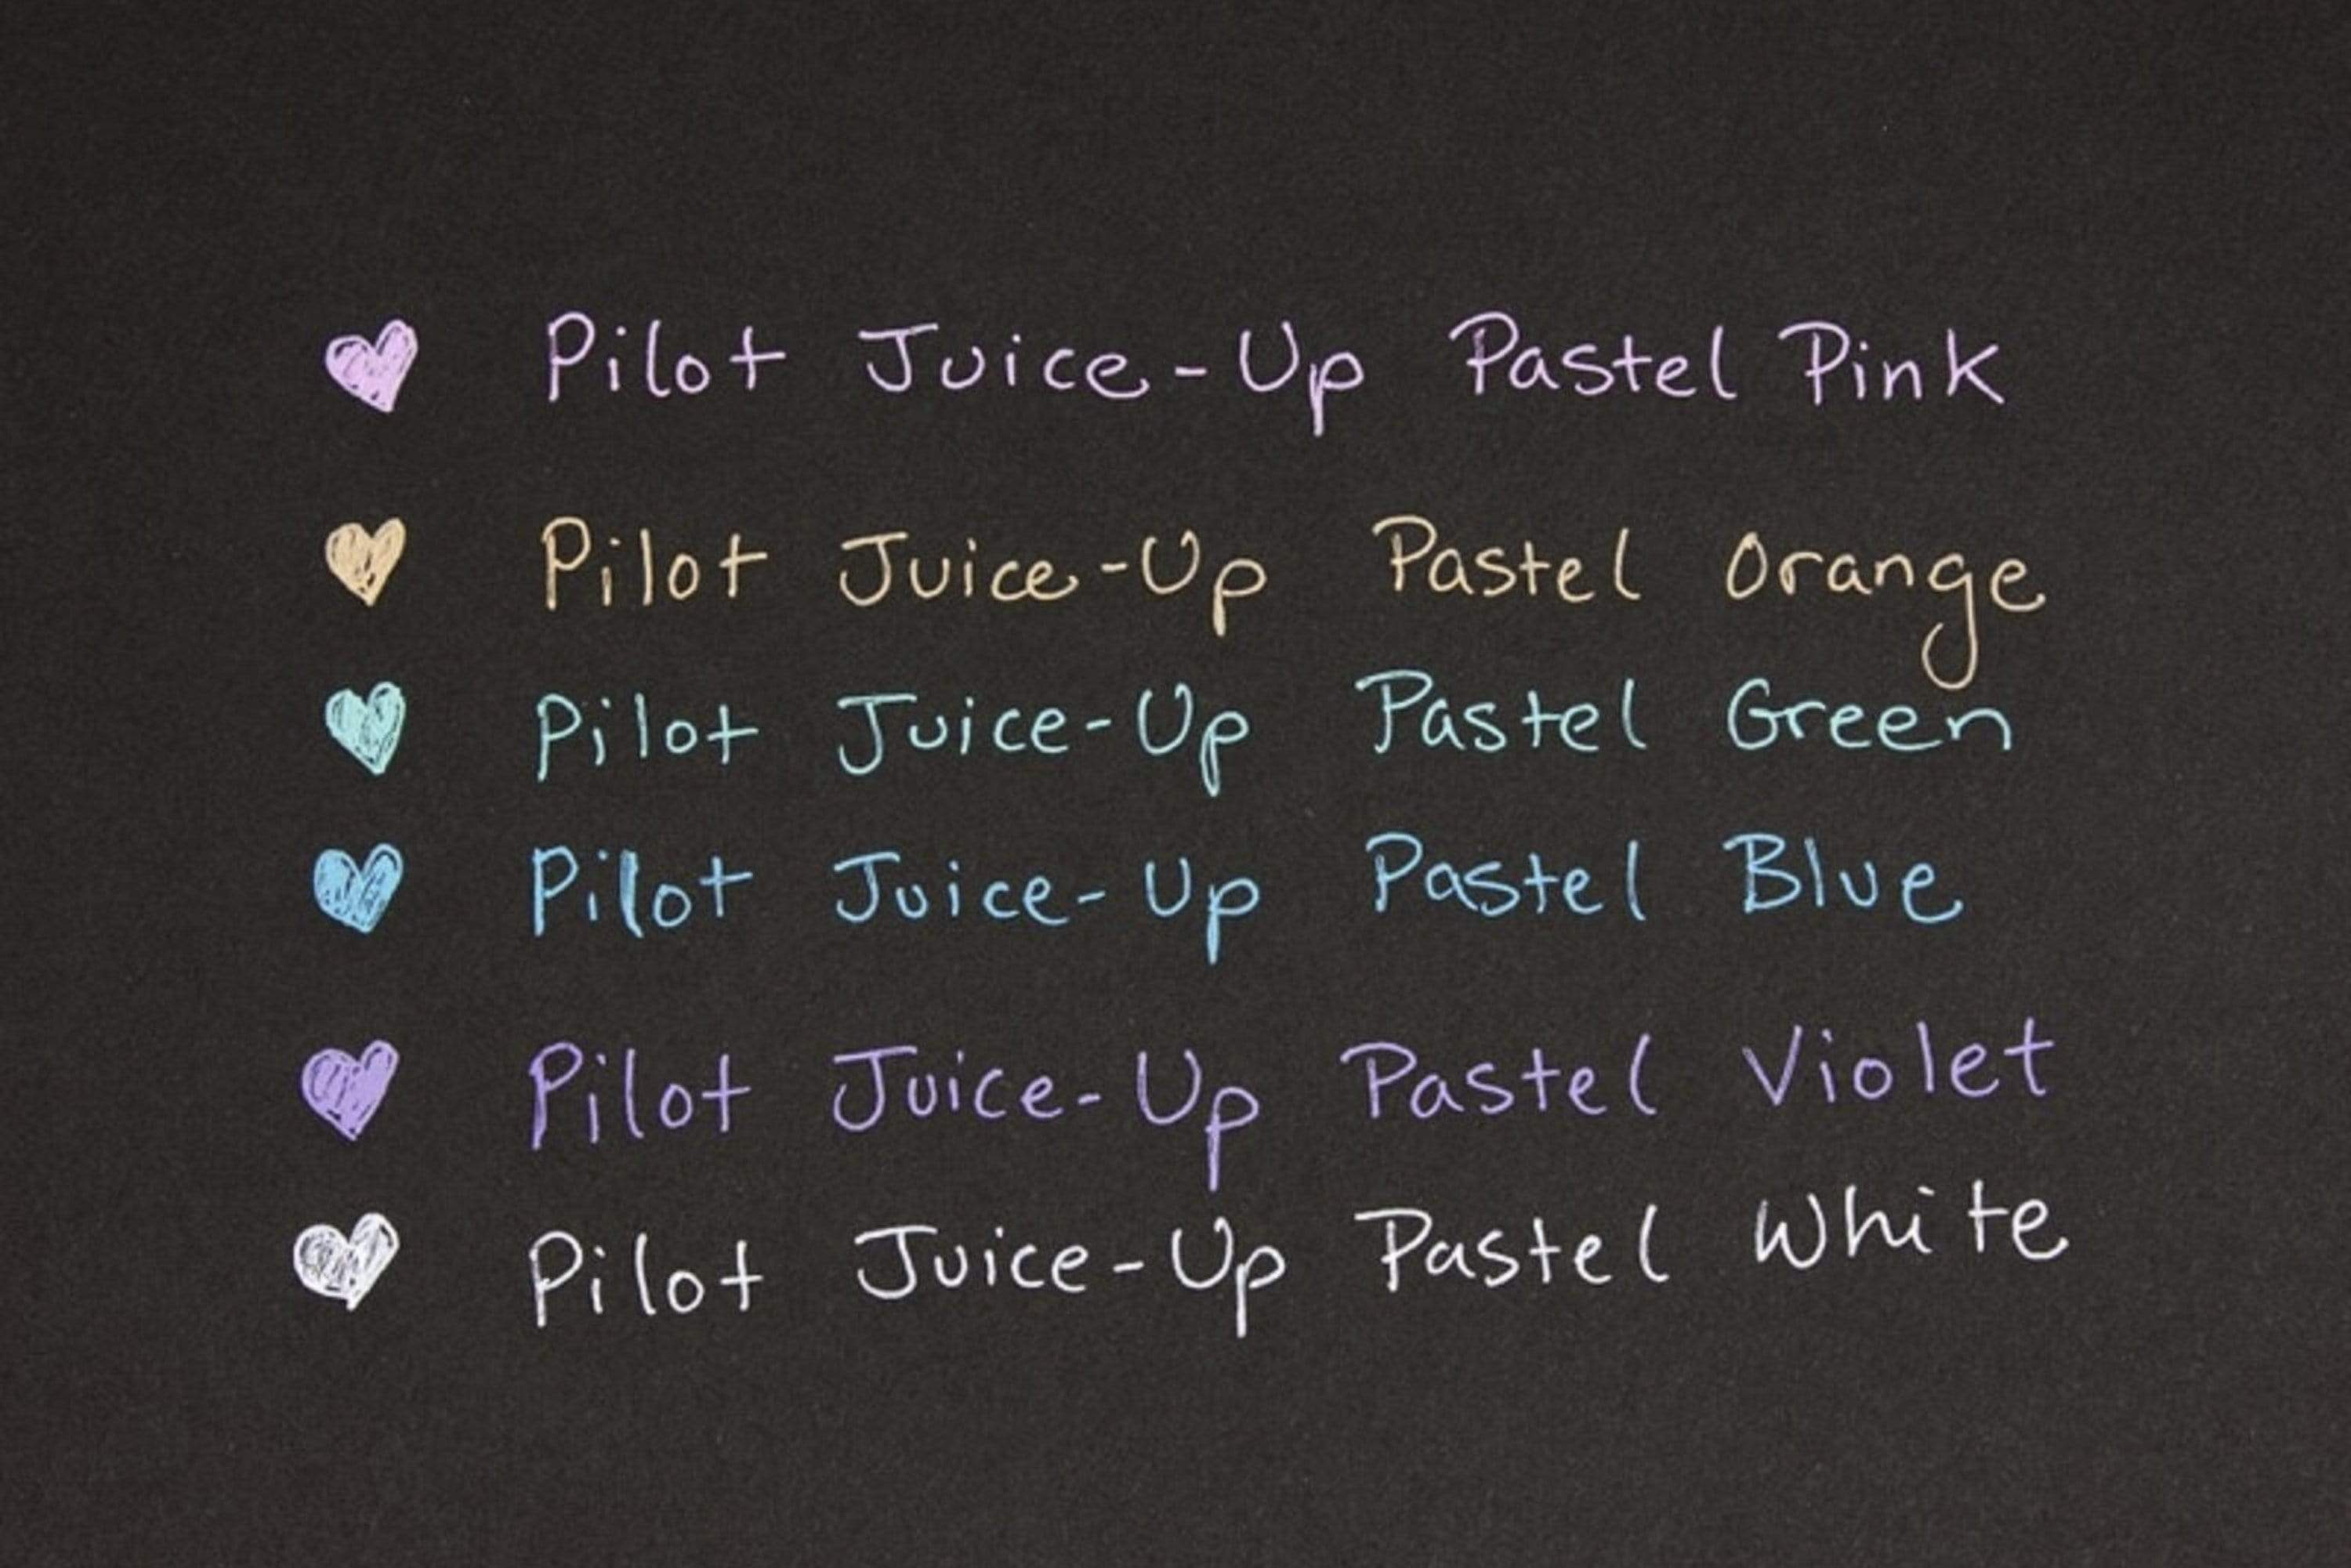 PASTEL Pilot Juice Up Single Pen or Full Set Pilot Gel Pen | 0.4mm - The Stationery Life!